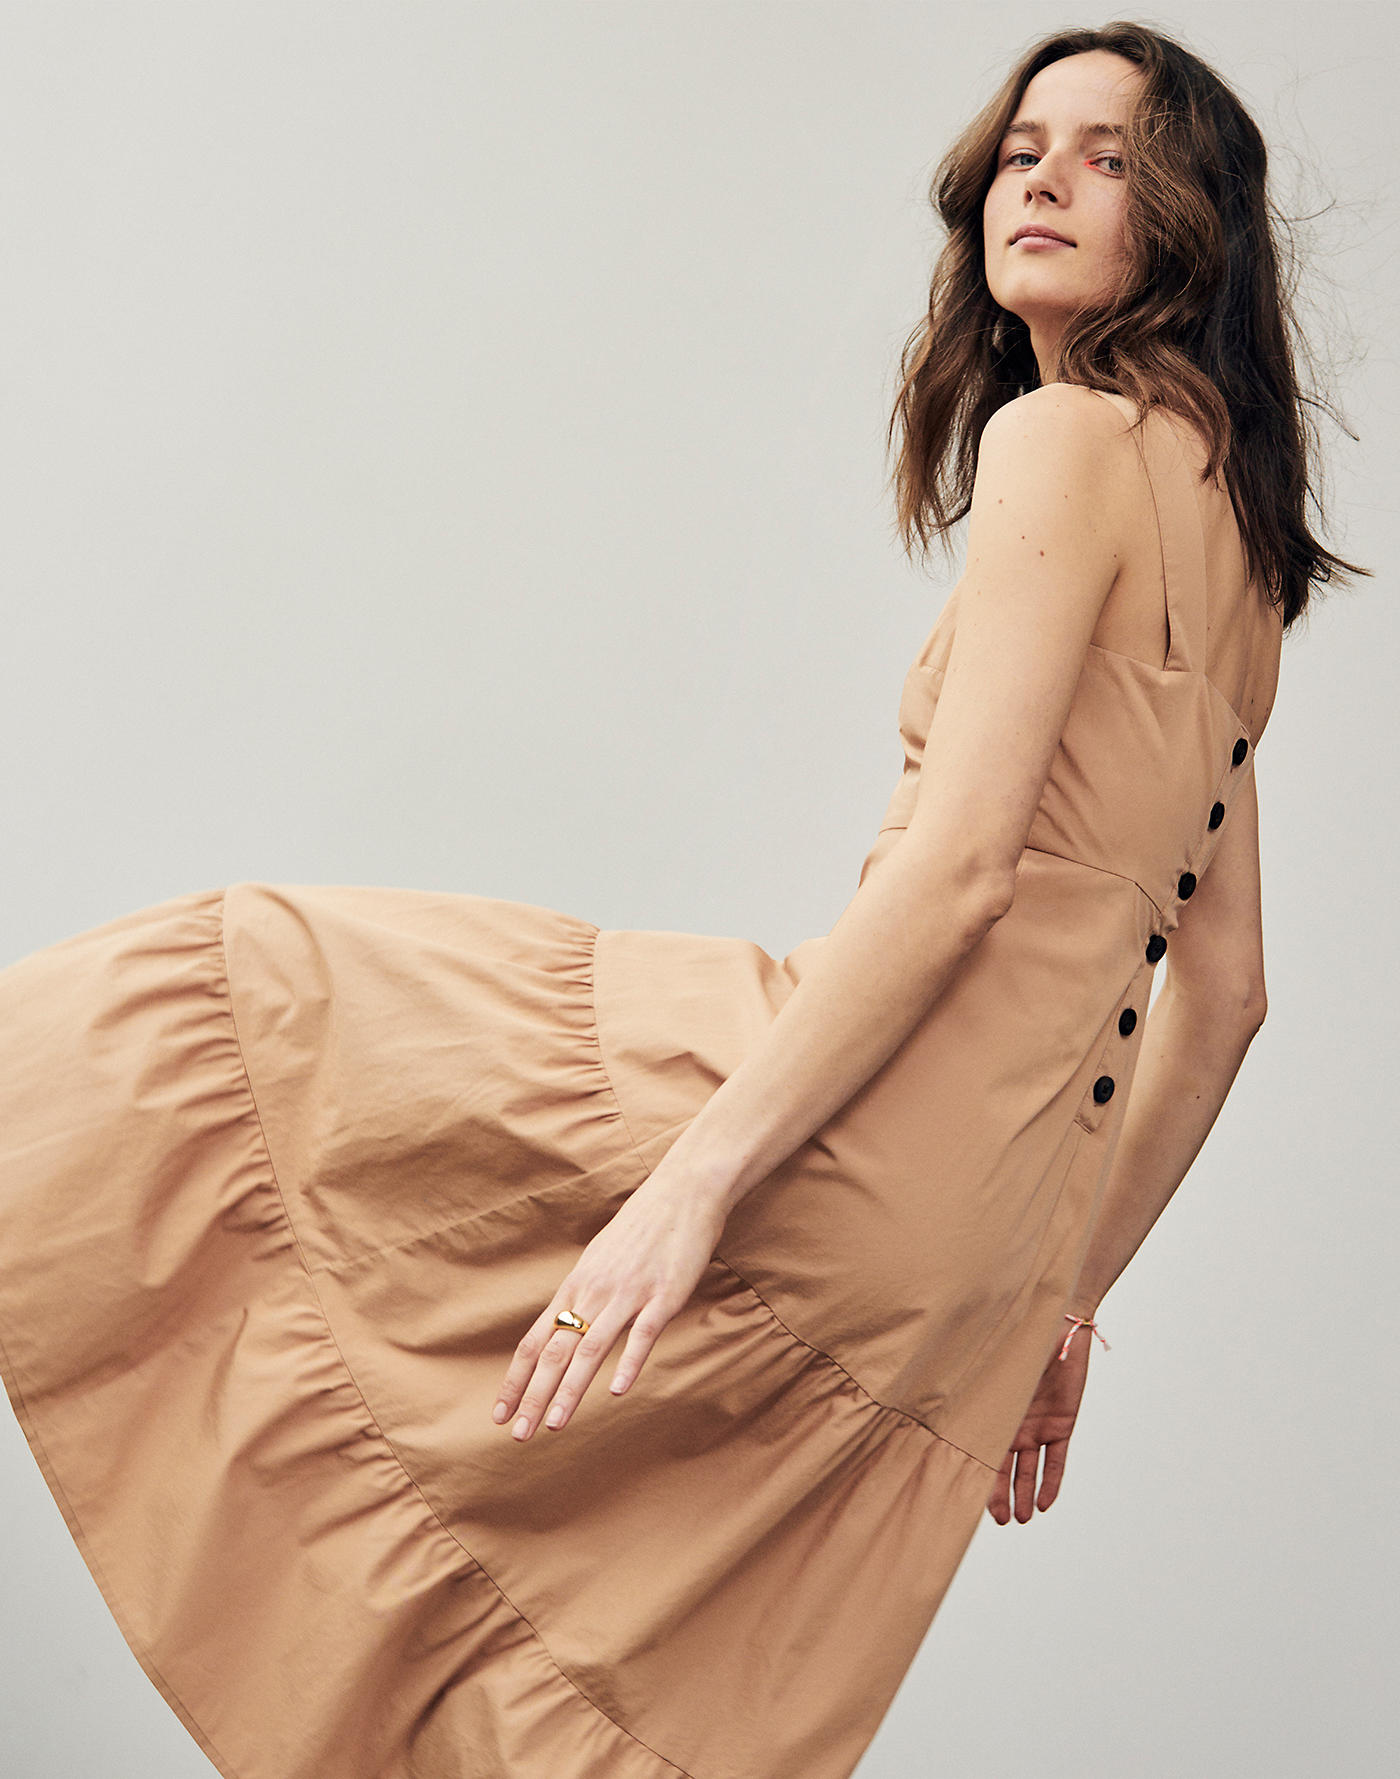 MADEWELL SECRET SALE! CLEARANCE UP TO 70% OFF & AS LOW AS $8!